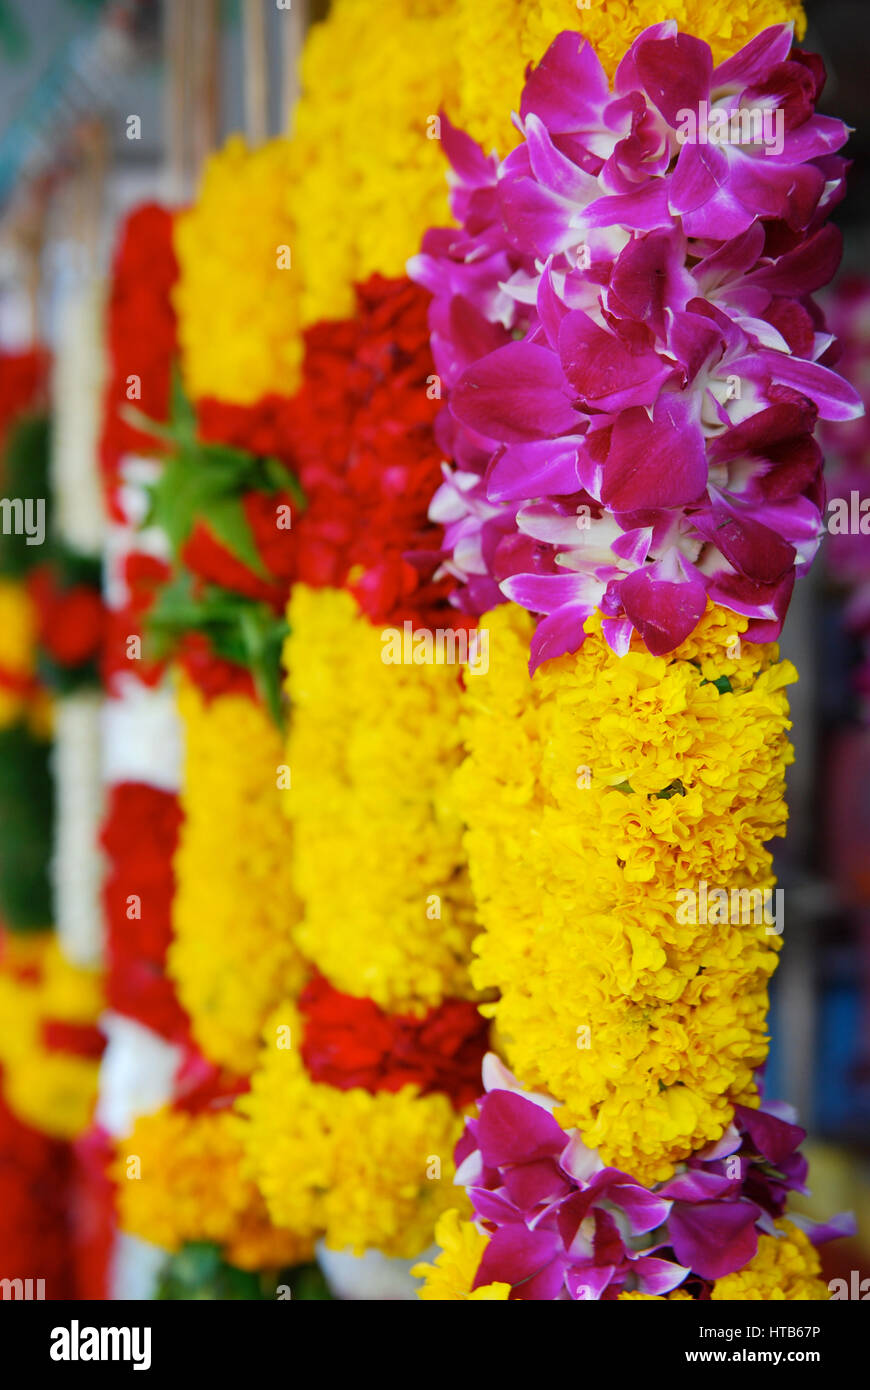 Indian Flower Garland High Resolution Stock Photography And Images Alamy